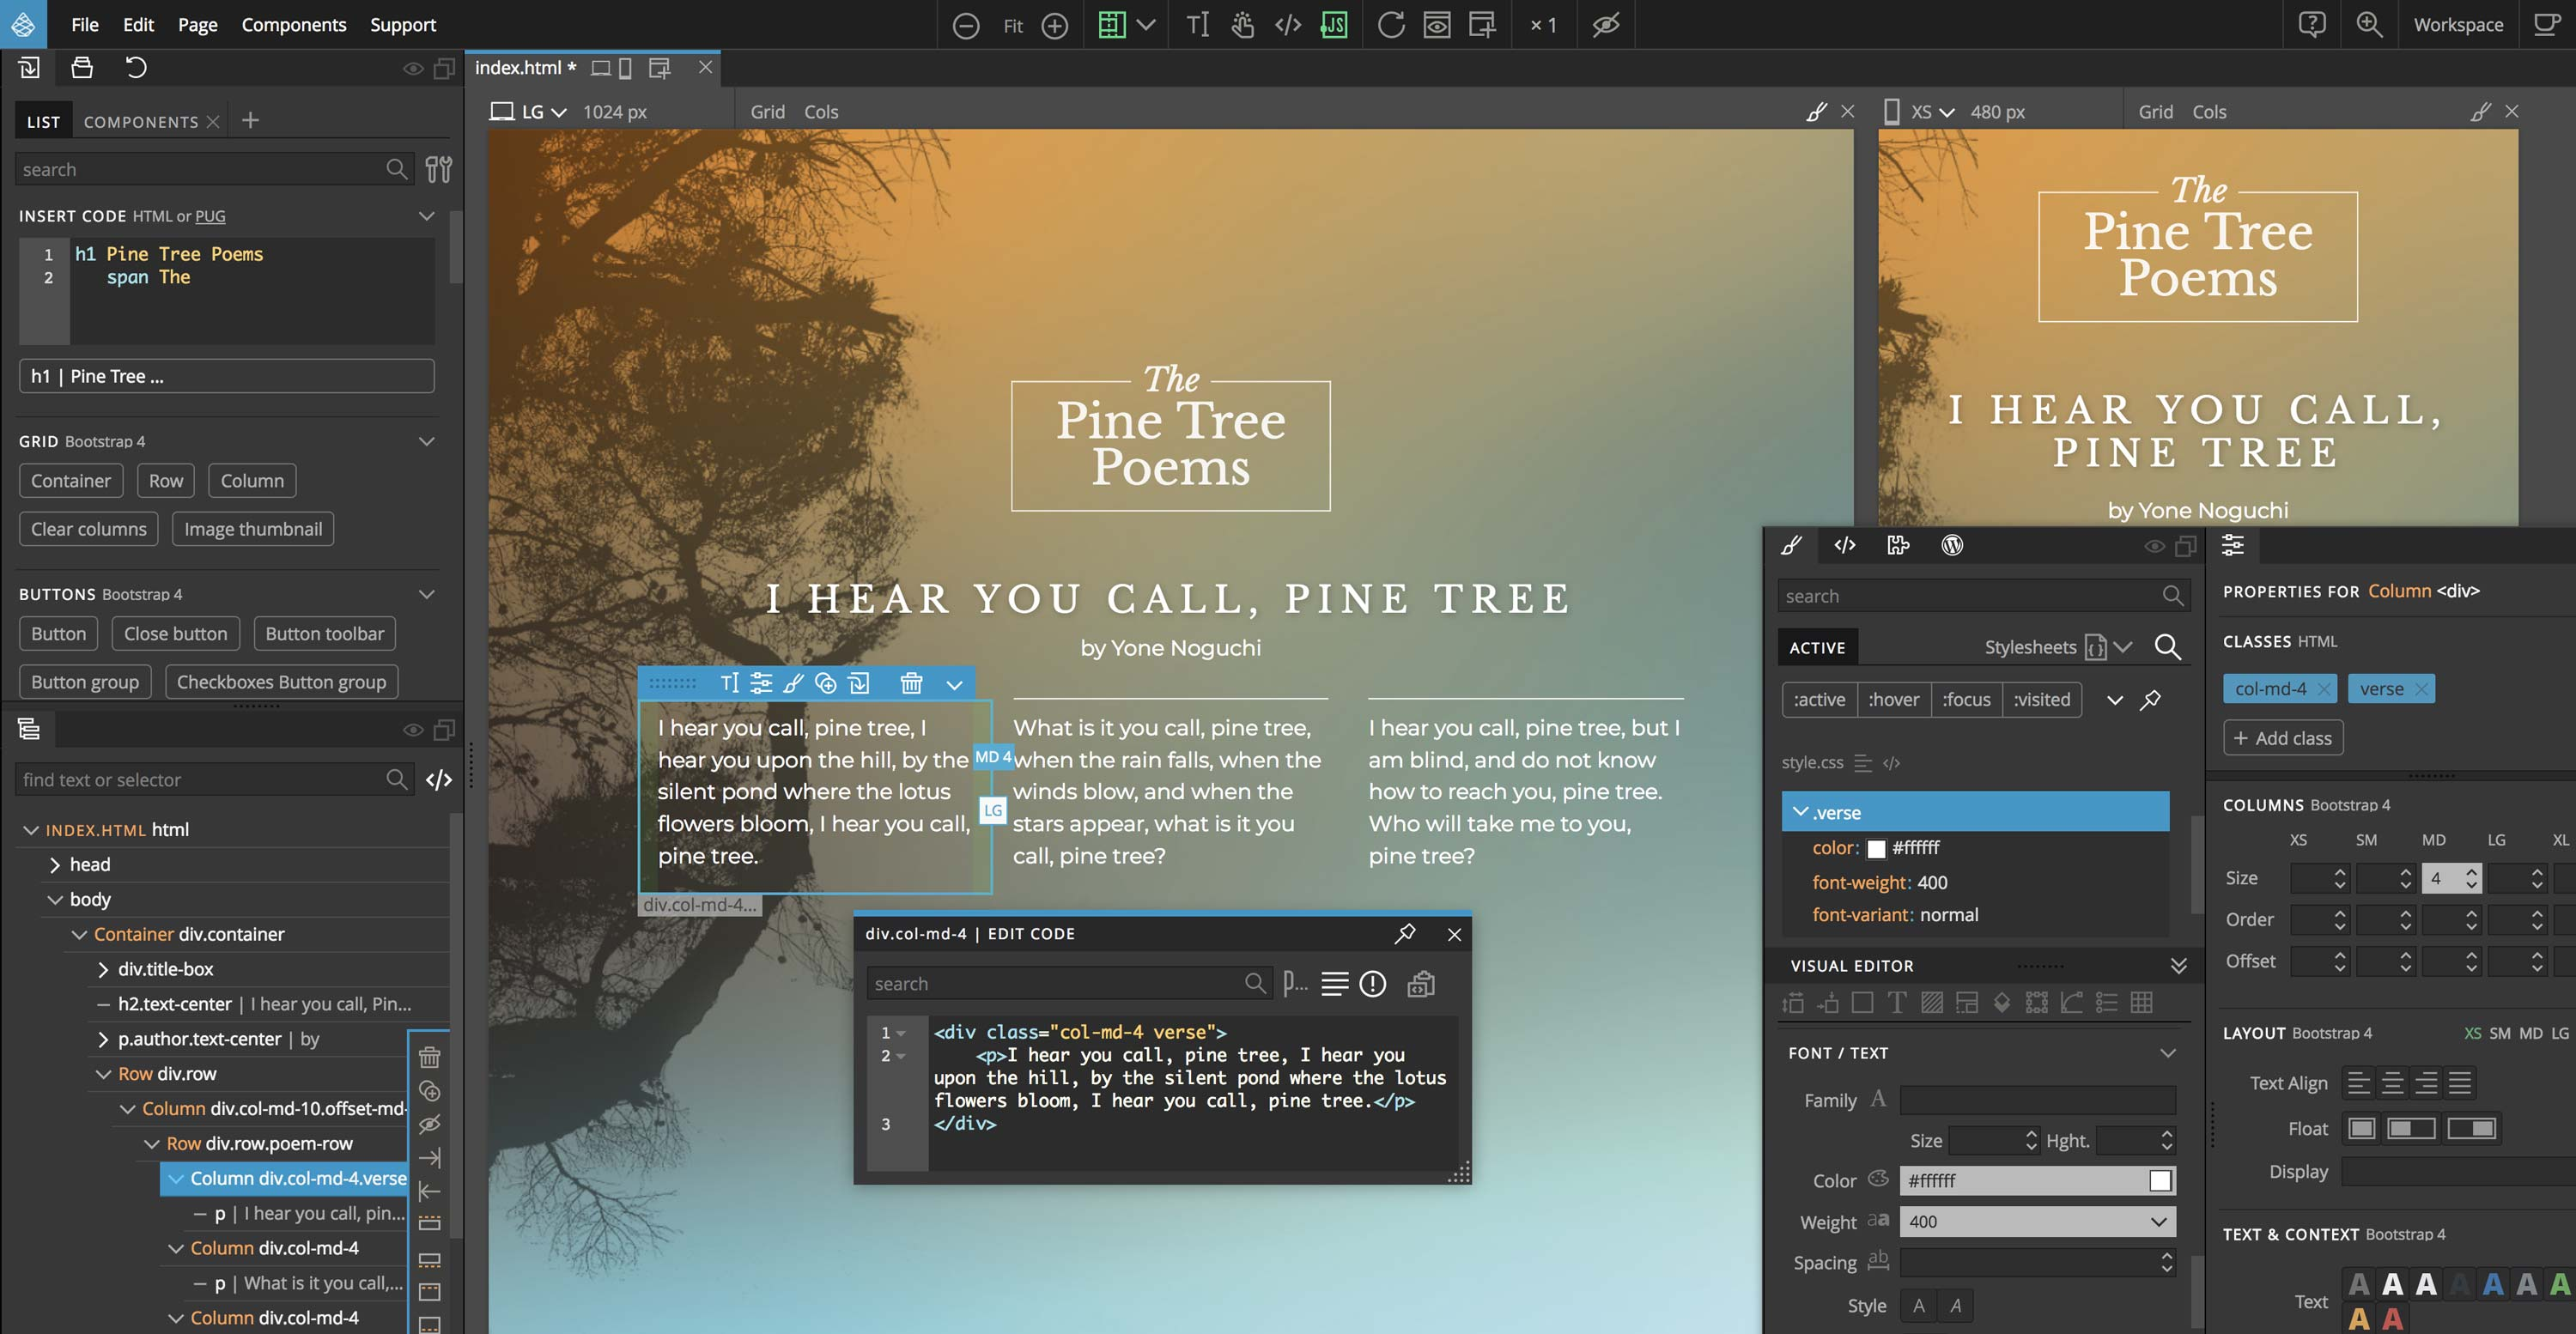 Pinegrow Web Editor | Website Builder for Professionals